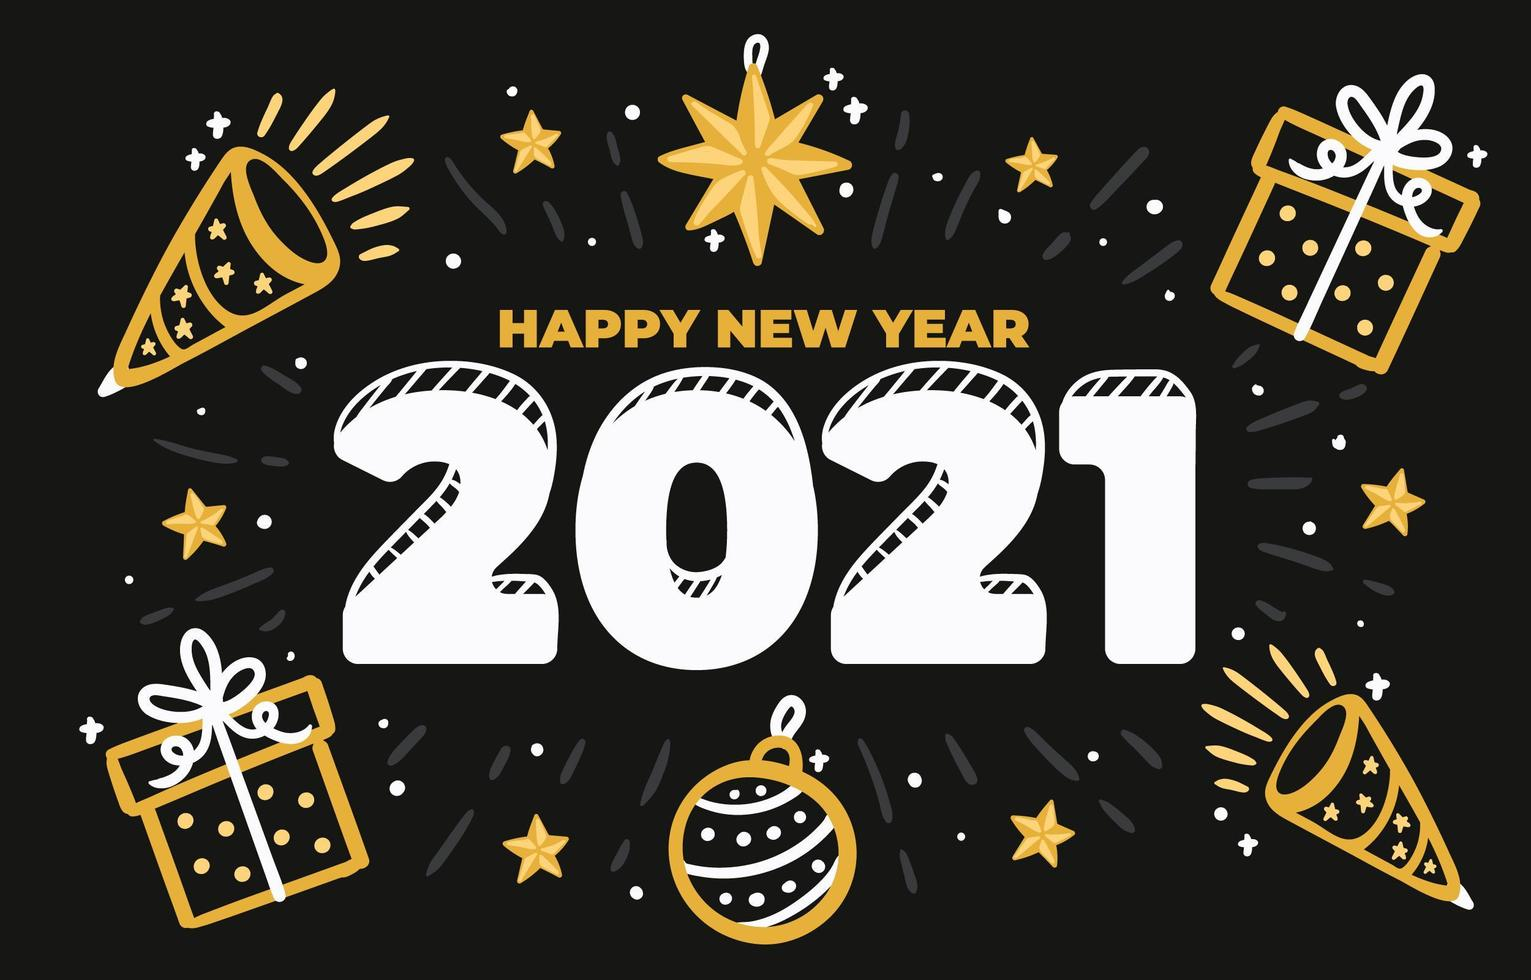 Free Printable Happy New Year 2021 Clipart